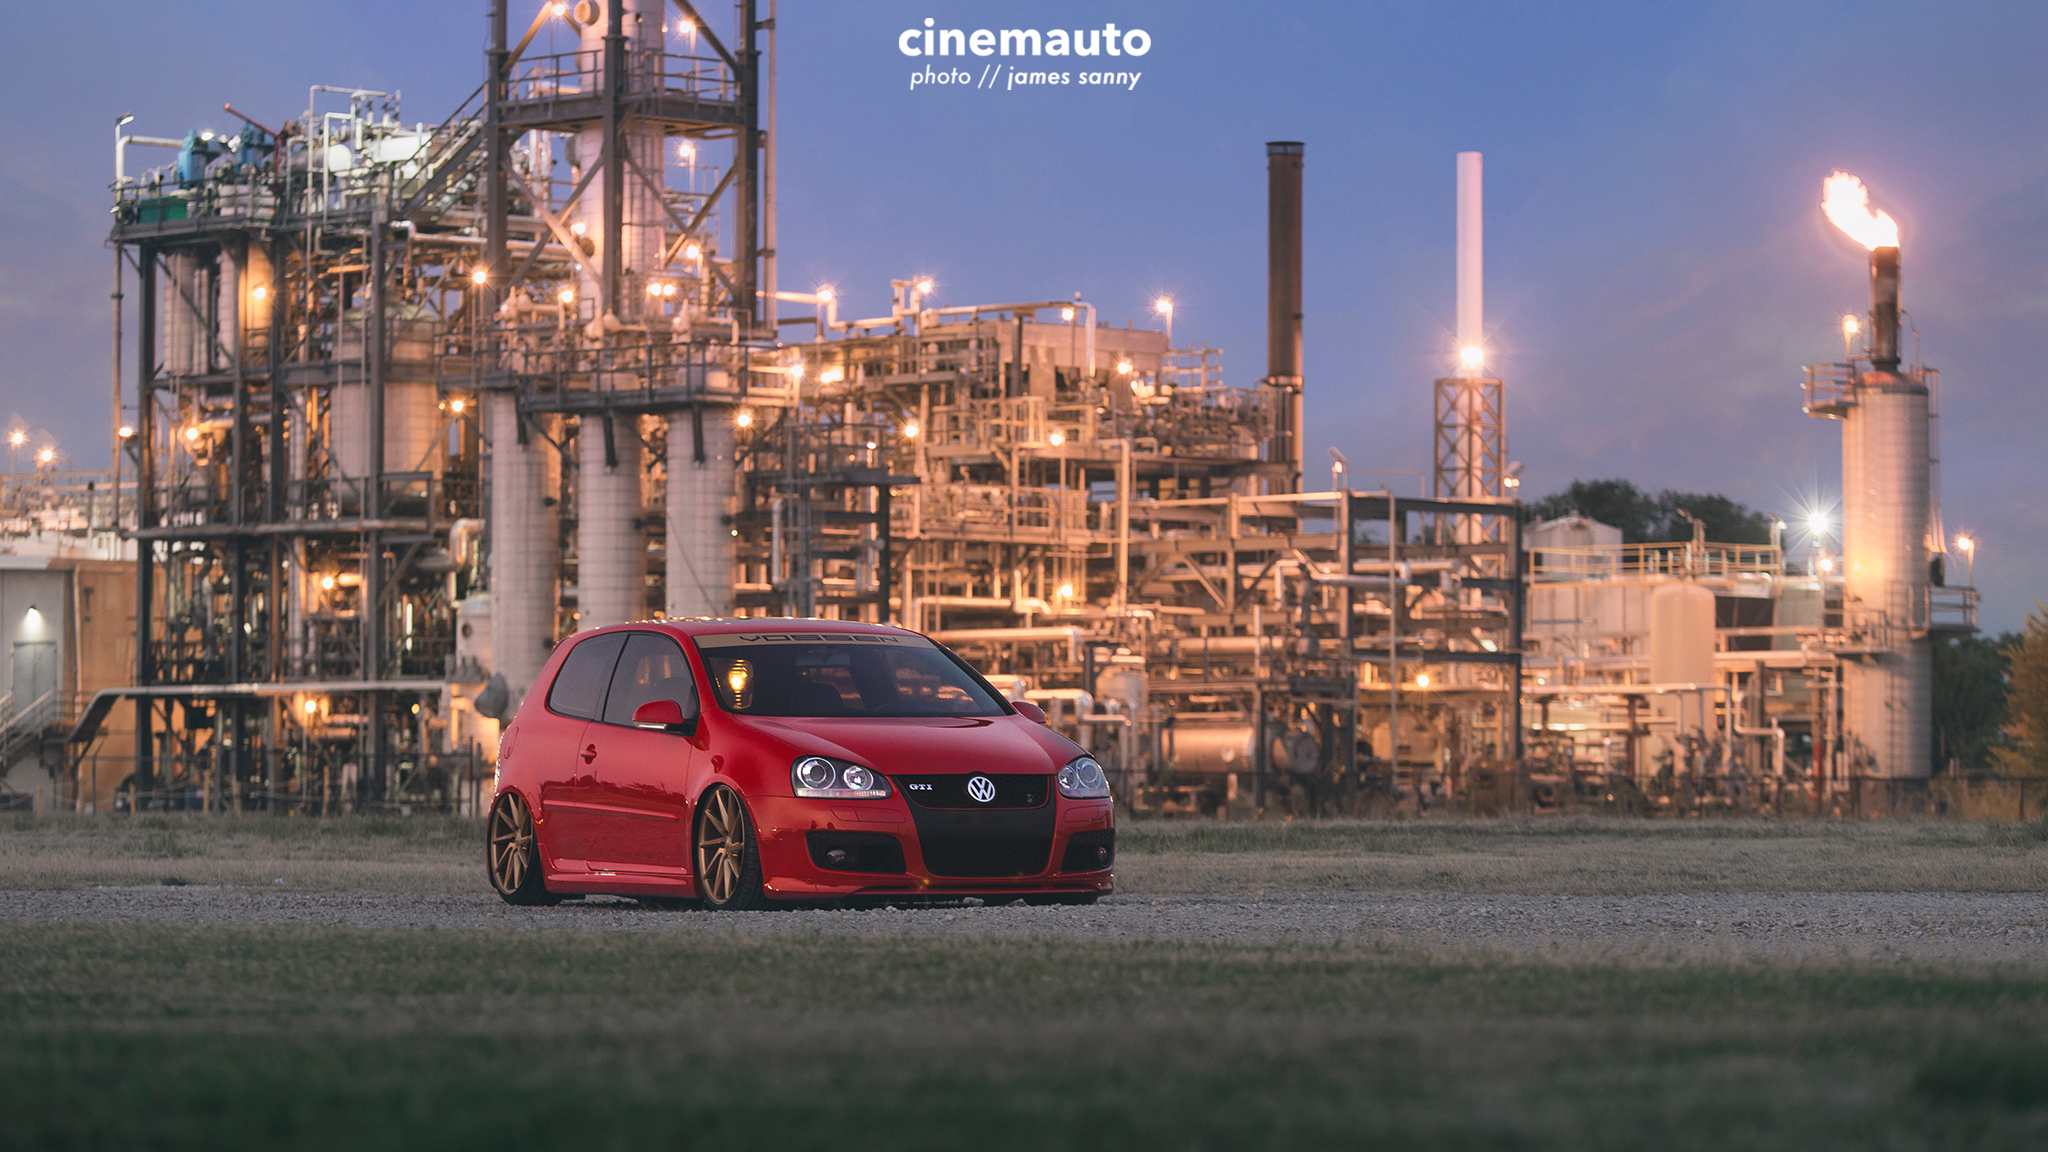 wichita-automotive-photographer-kansas-gti15.jpg